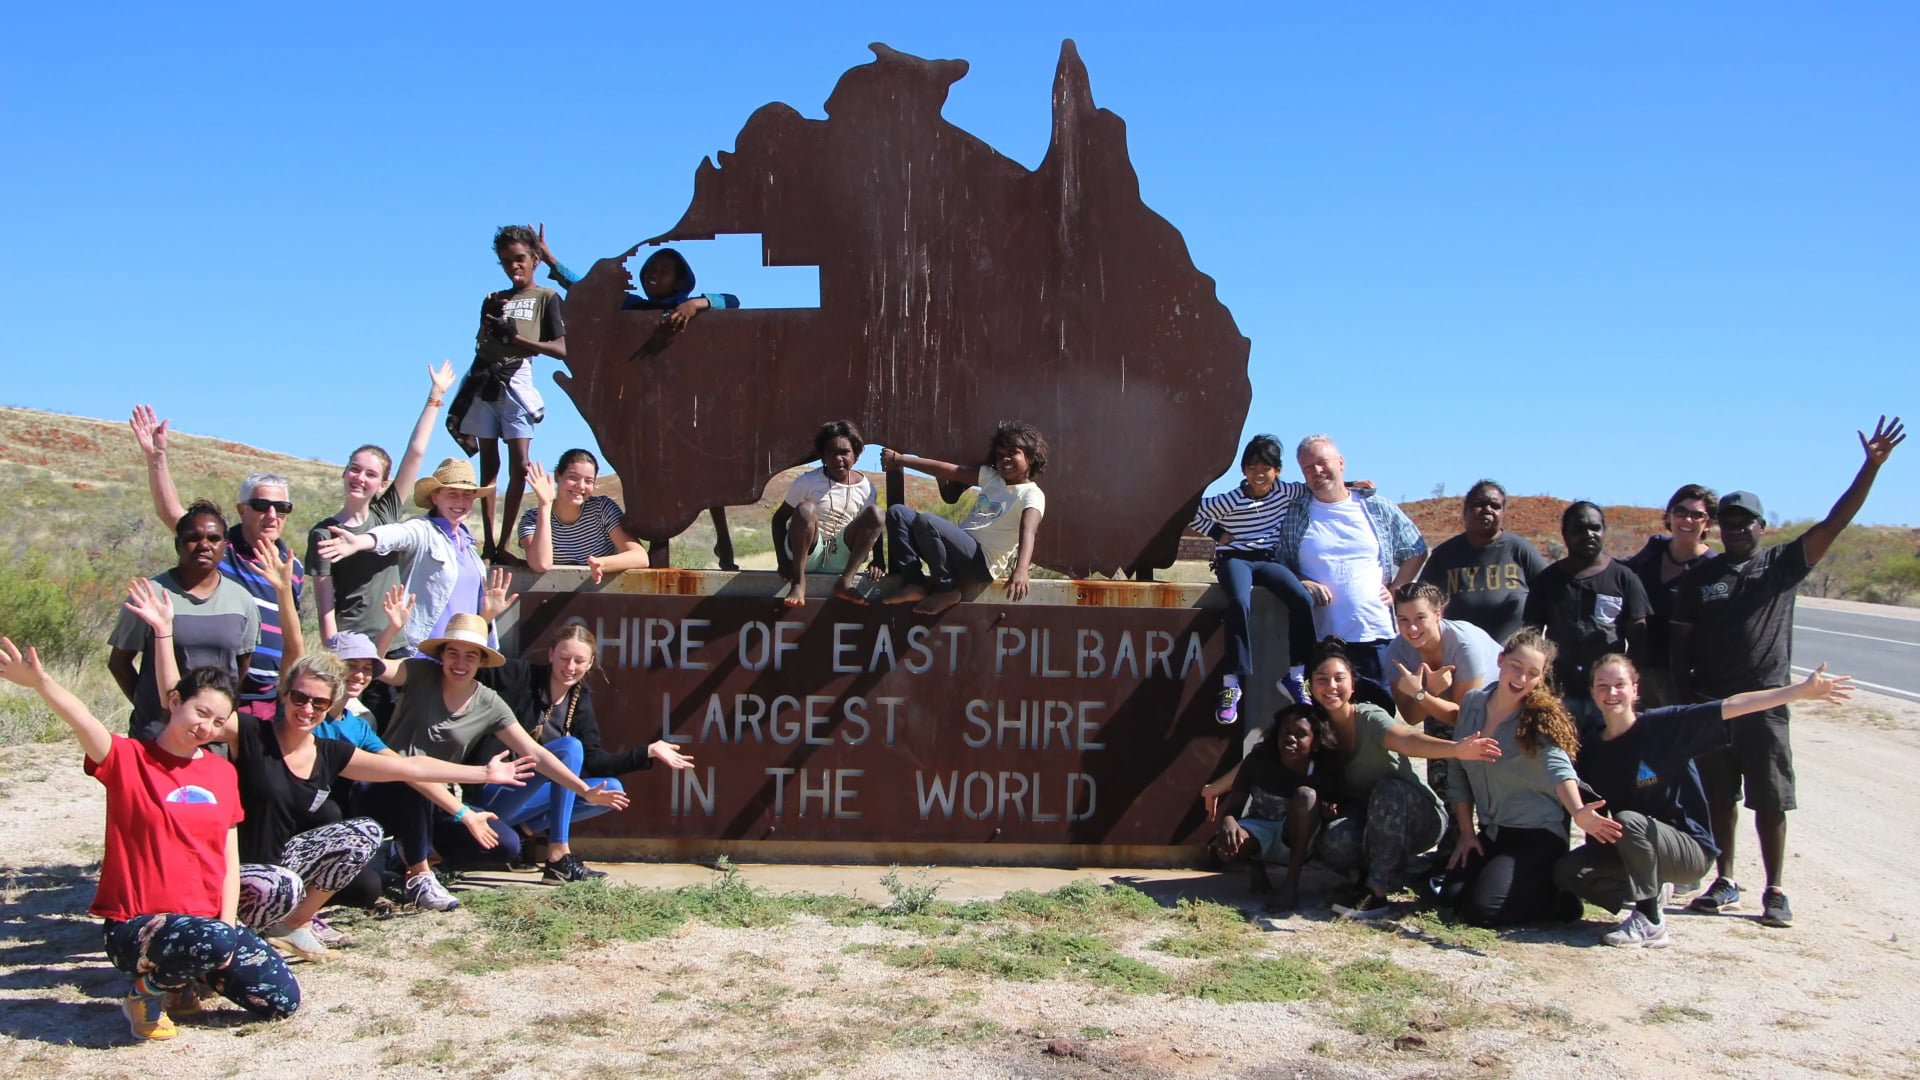 Group Waving to the Camera by the Large East Pilbara Shire Signage